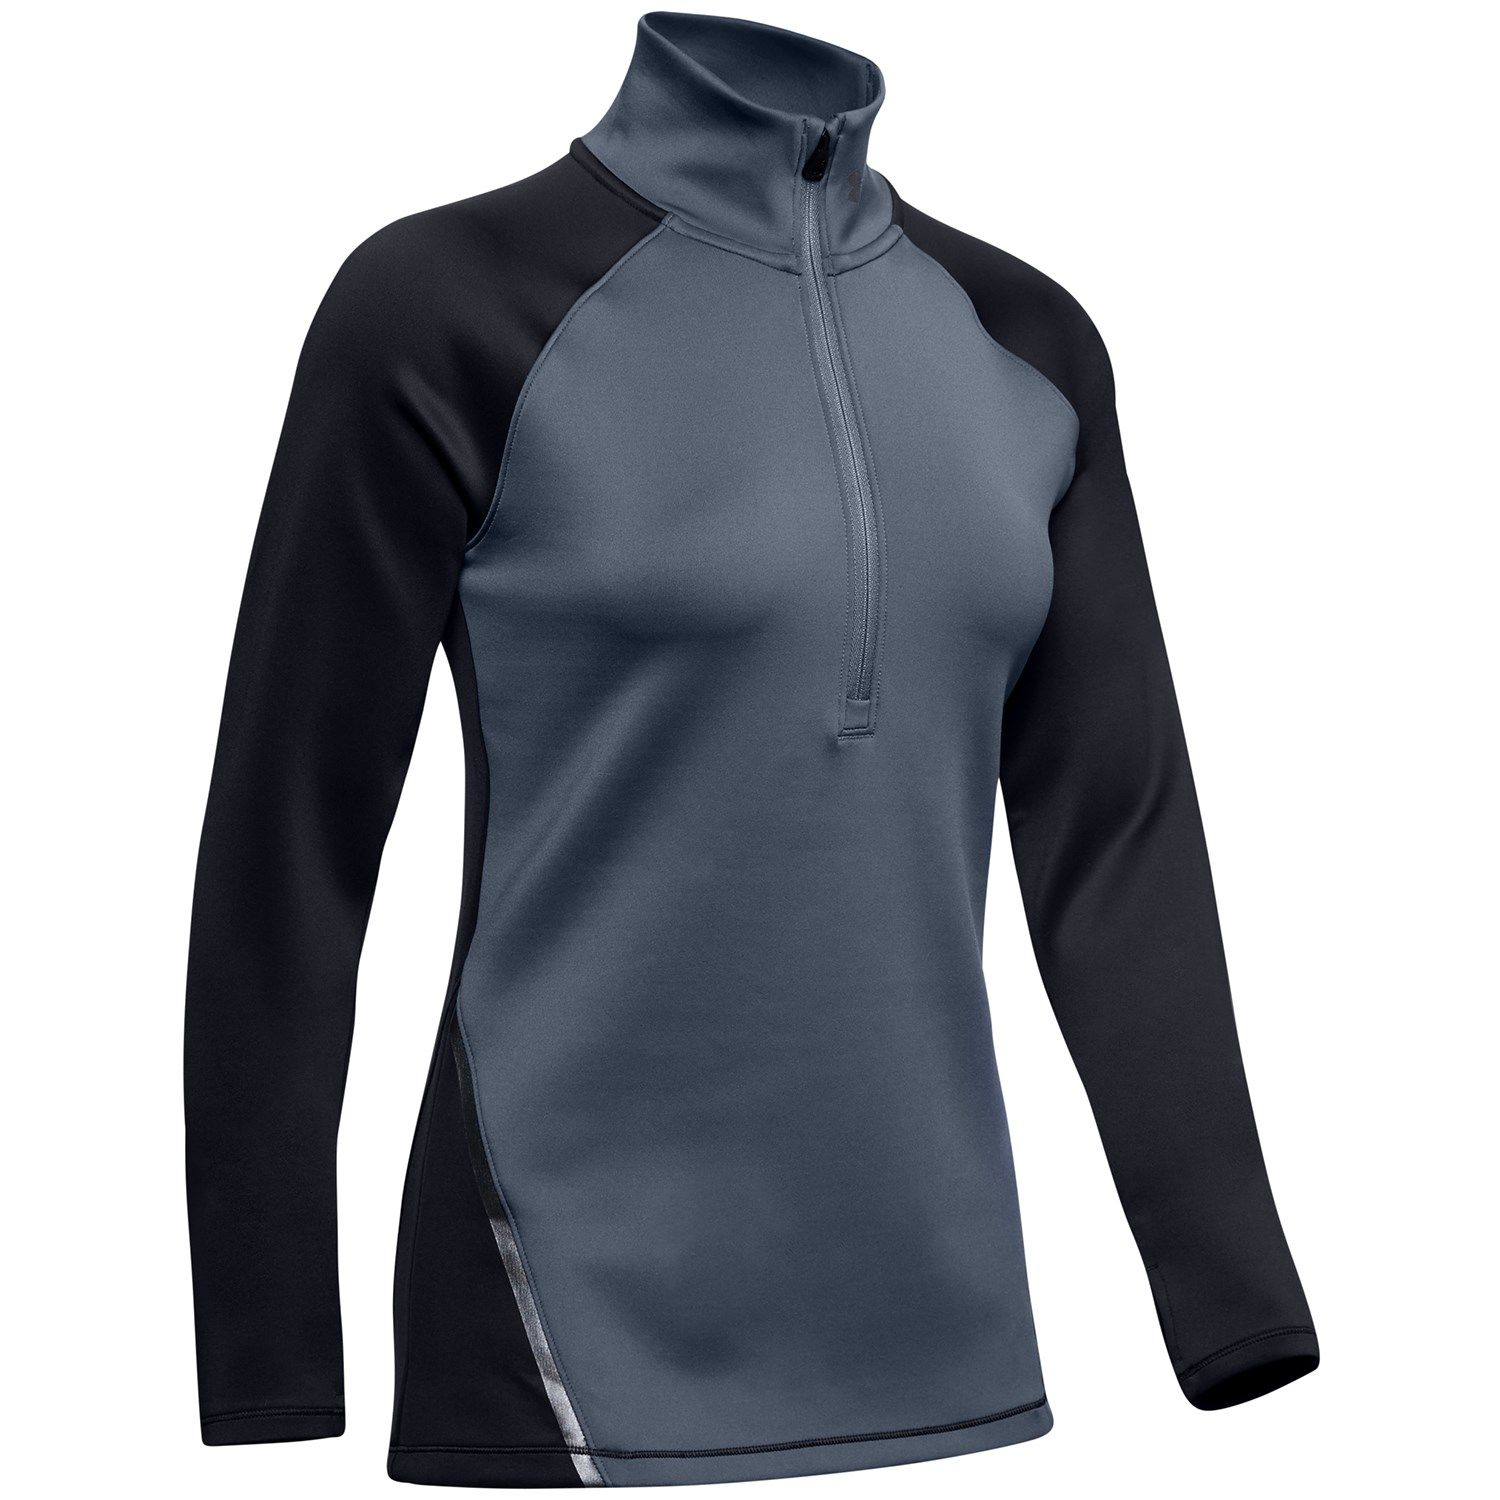 Photo of Women's Under Armour ColdGear in Black Size Small